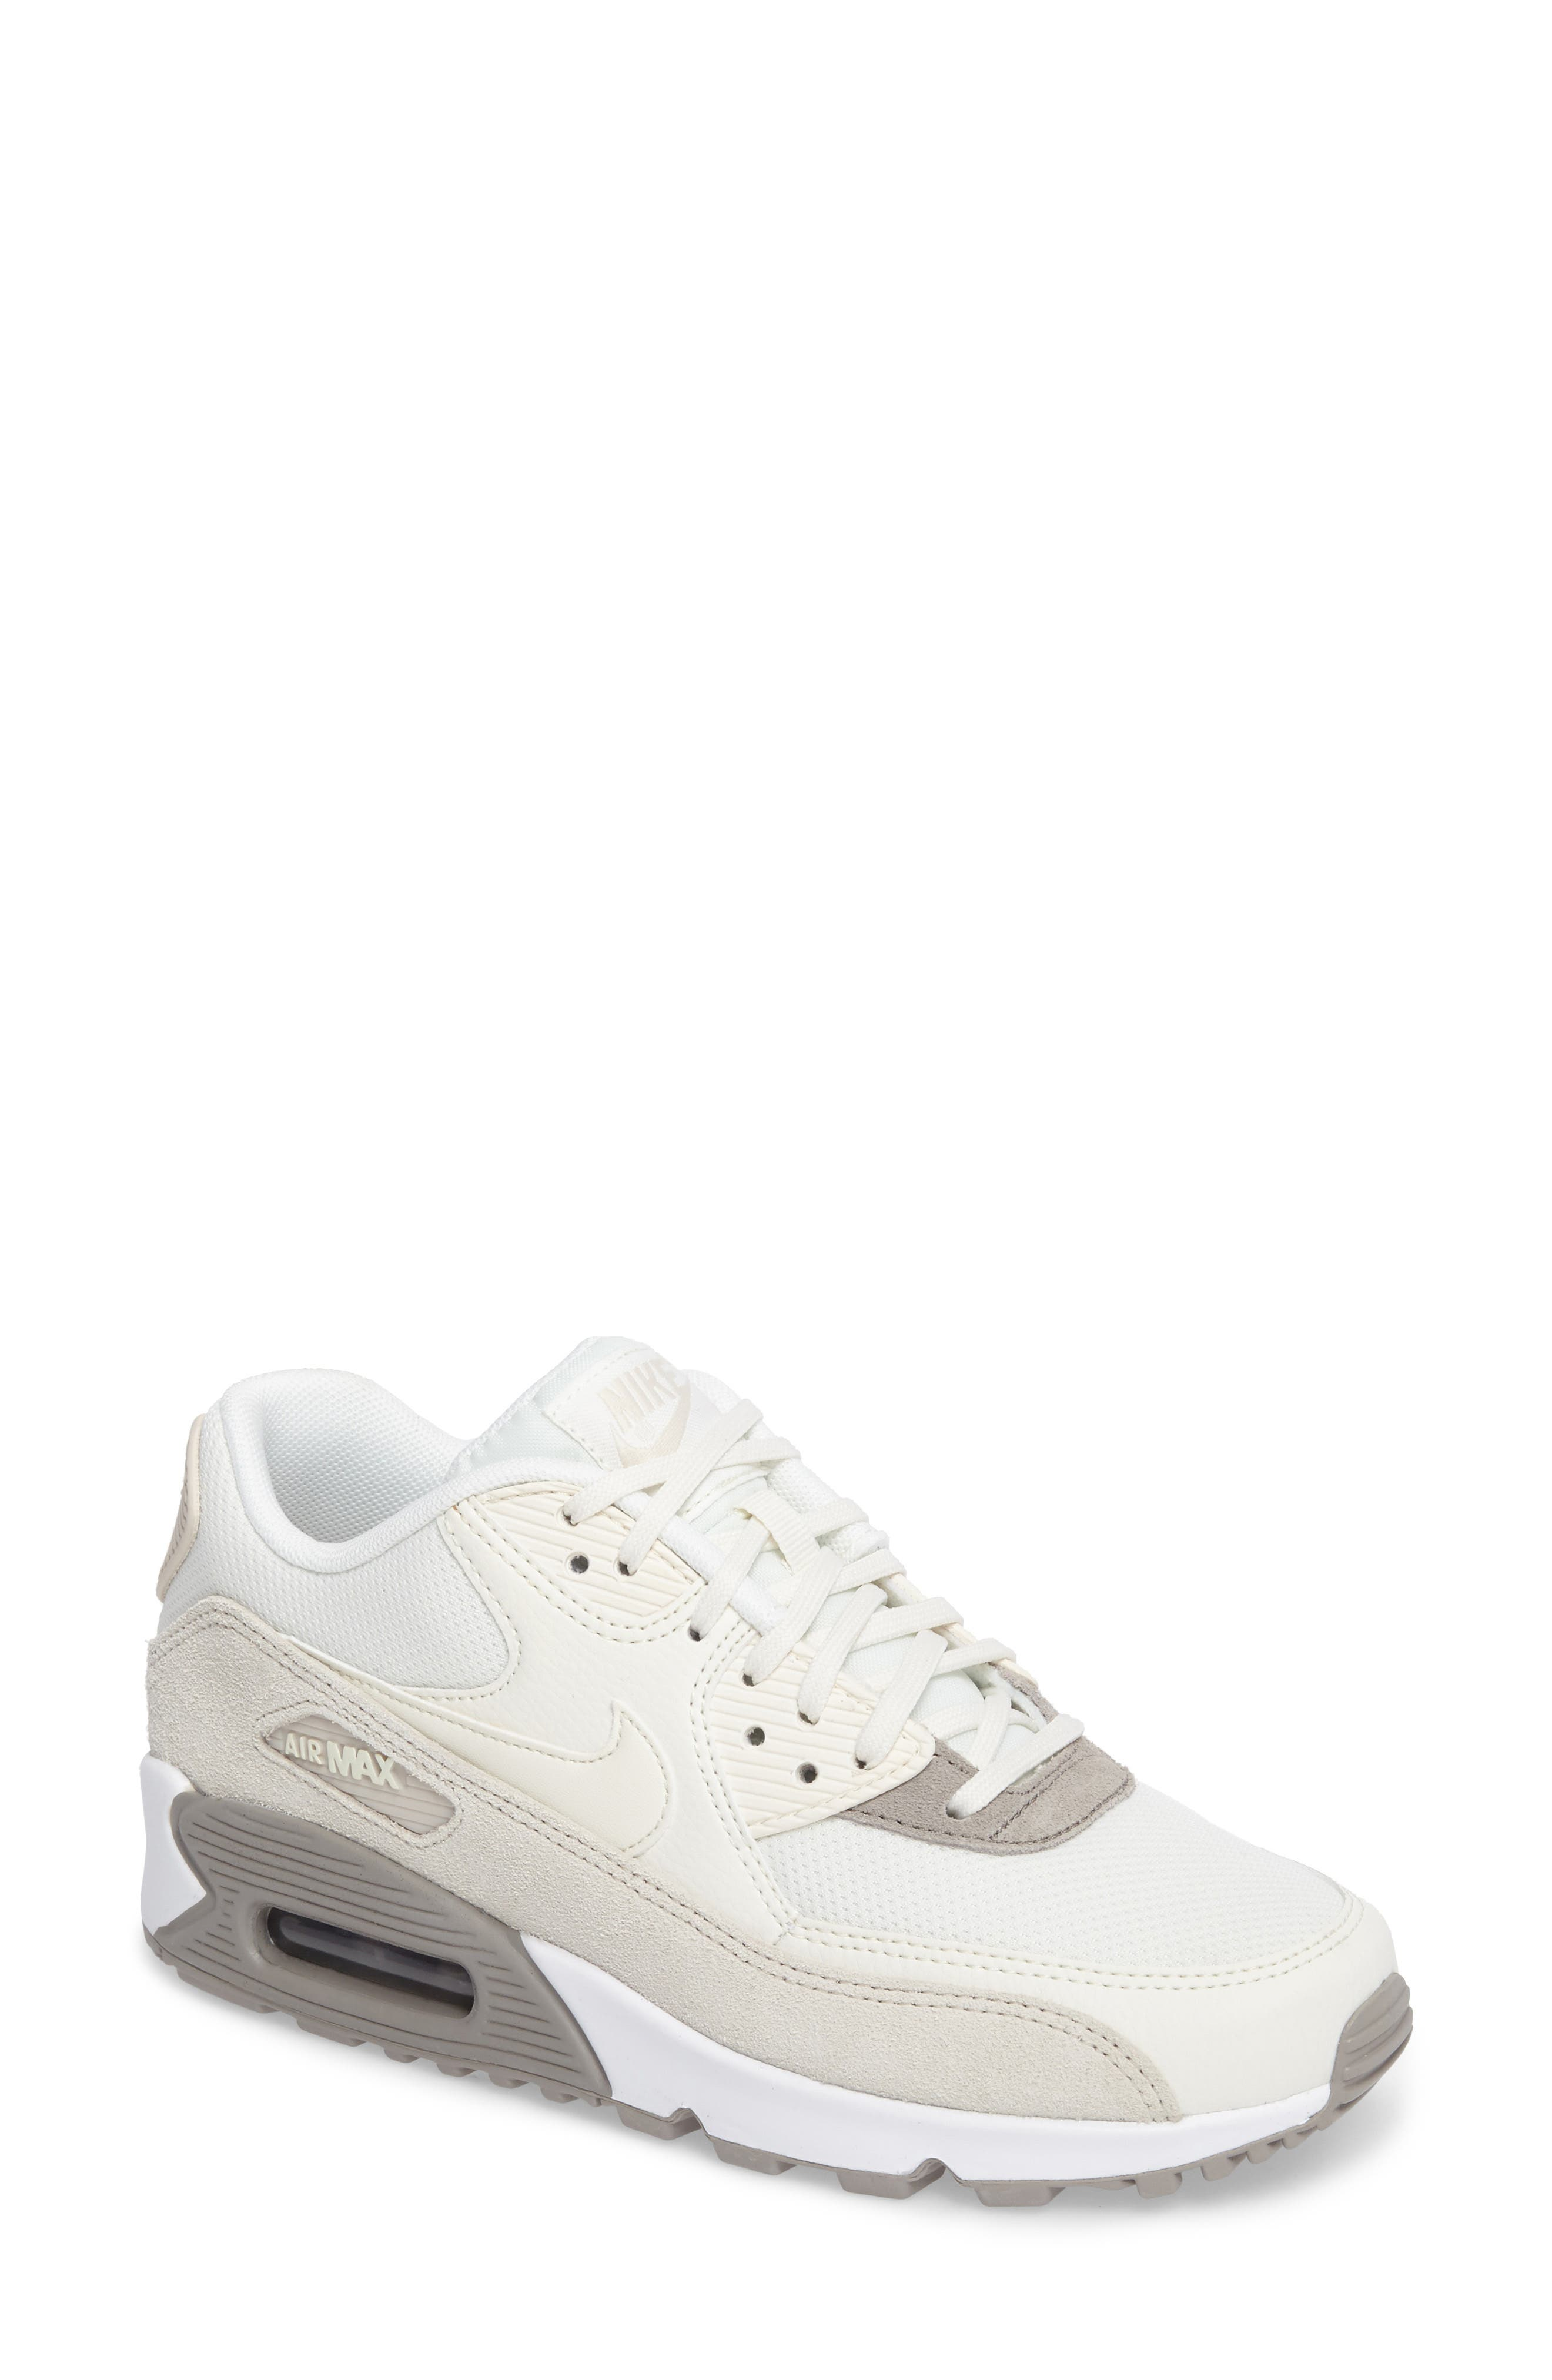 Main Image - Nike 'Air Max 90' Sneaker (Women)